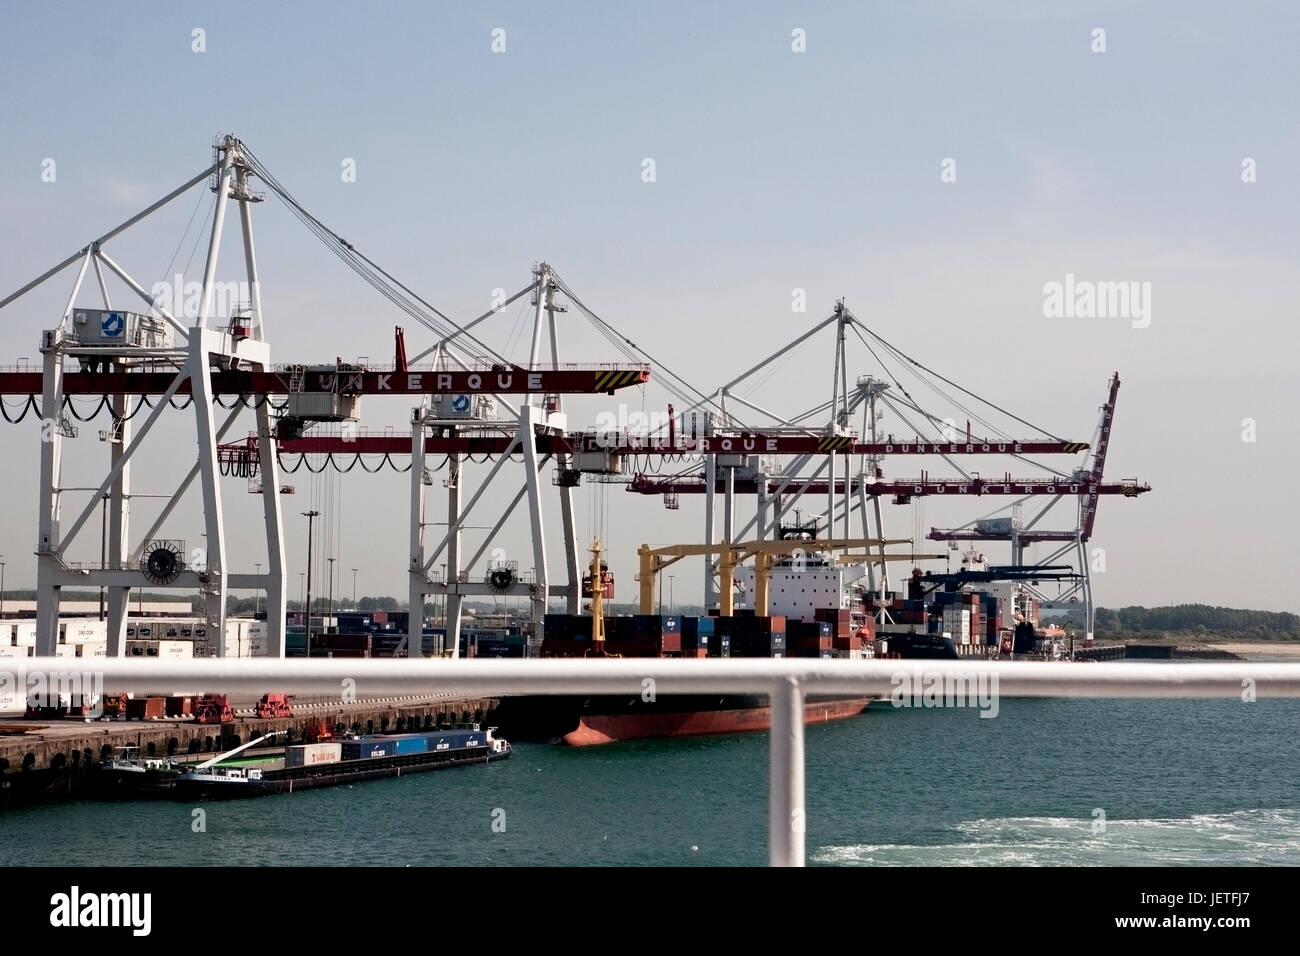 The container terminal at Dunkirk, France. Major route for imports and exports from Europe. - Stock Image